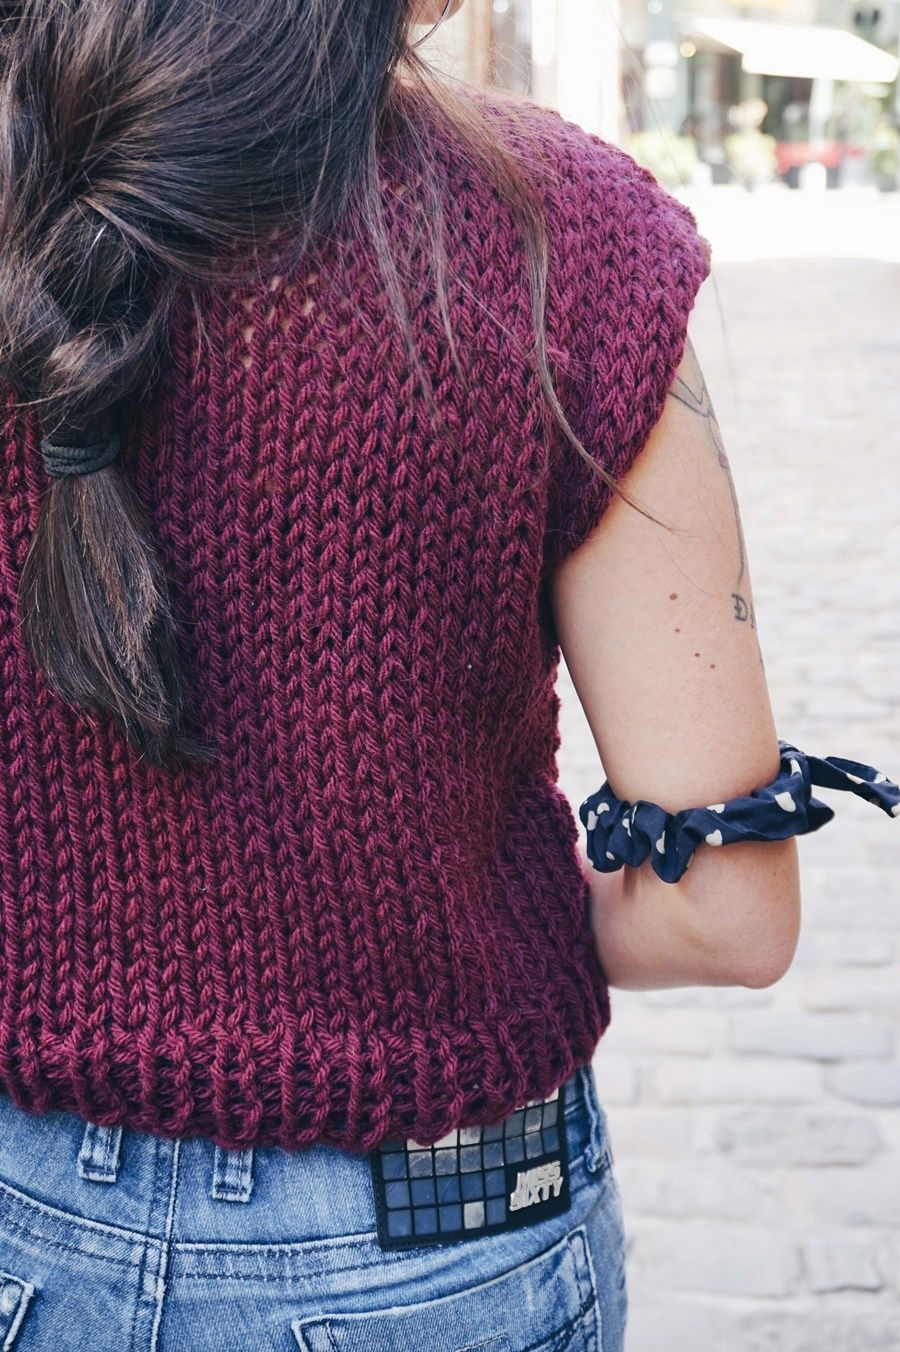 DIY KNIT CROP TOP PATTERN - Little Things Blogged | Knitting ...